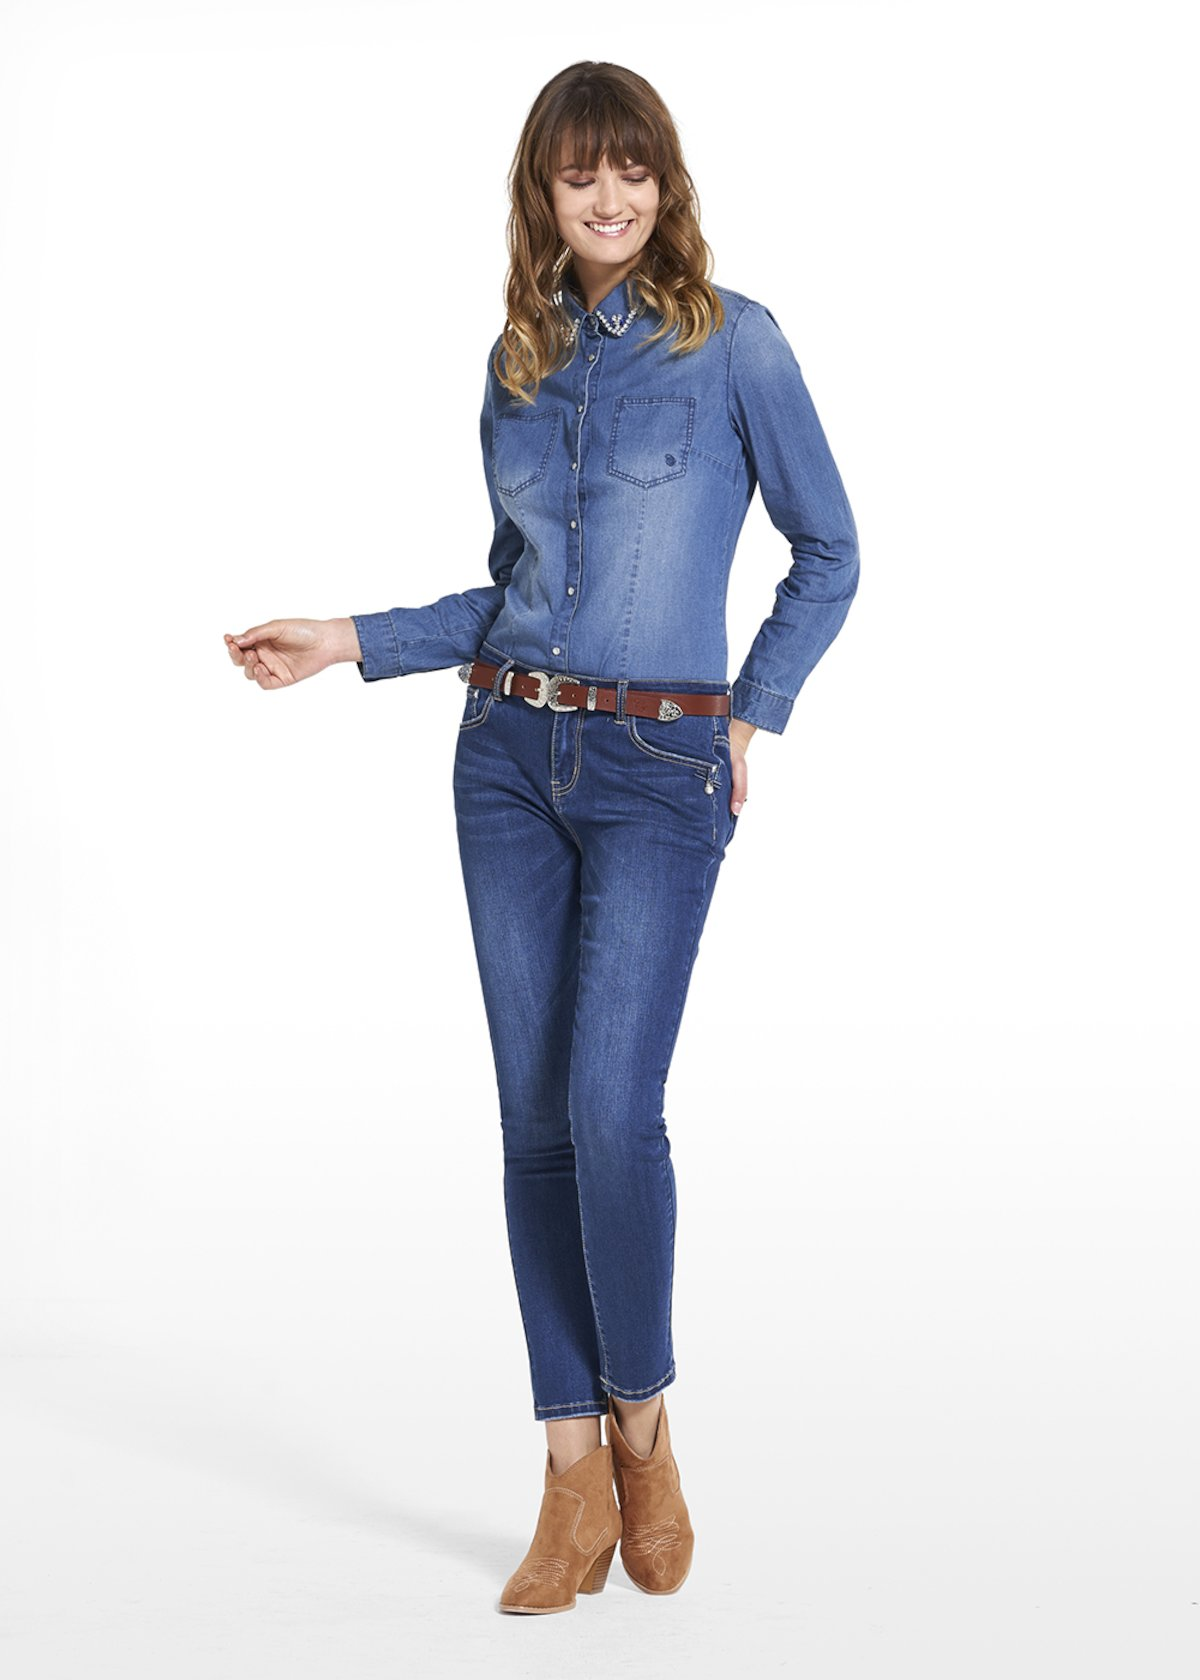 Blouse Chelly in denim with crystal detail and light blue rhinestones - Blue - Woman